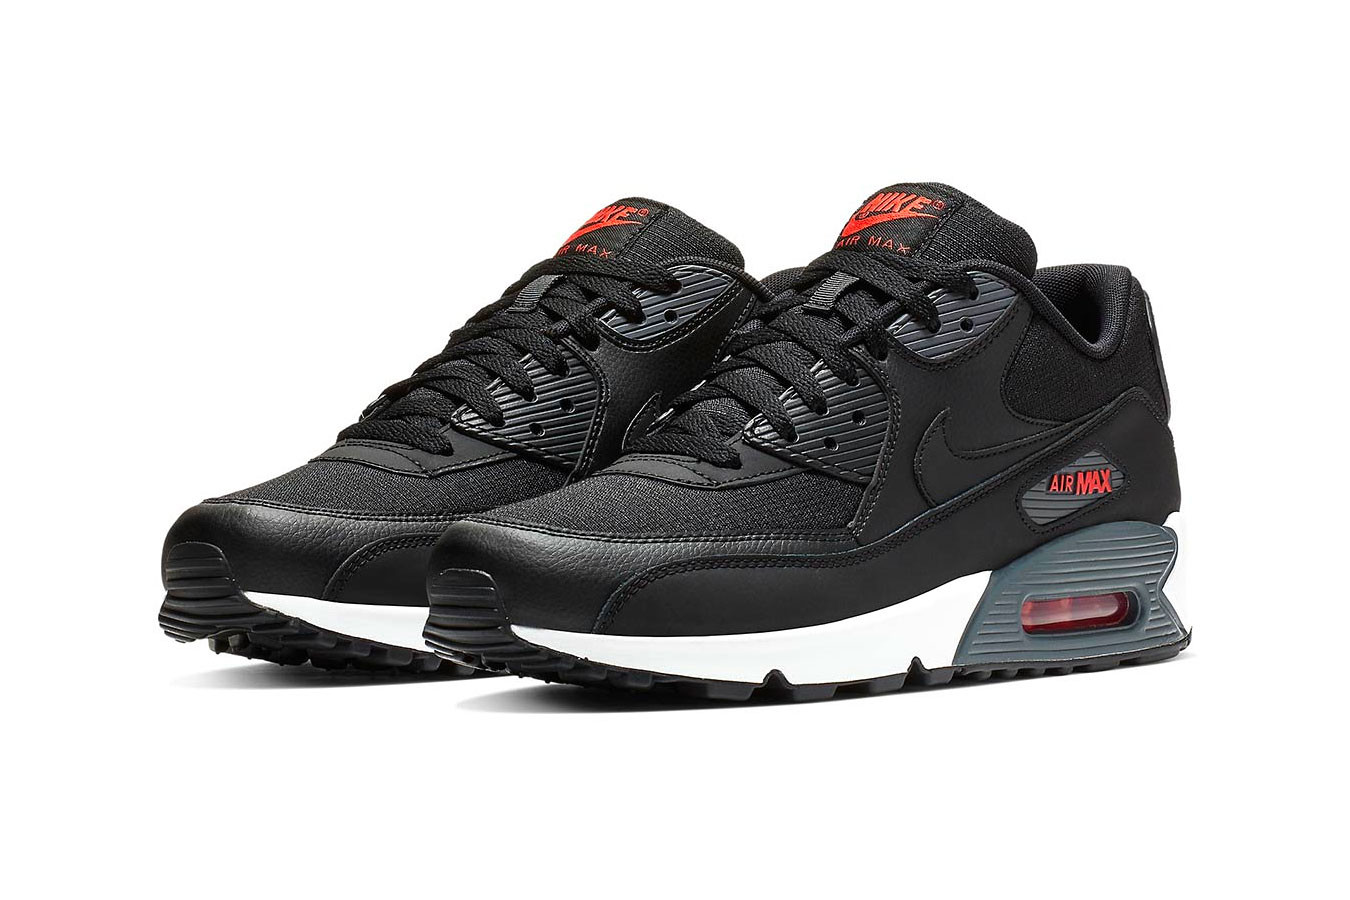 separation shoes 99671 65e85 Nike Beacon Boots Sale Women Size Air Max 90 Neo Turquoise ...